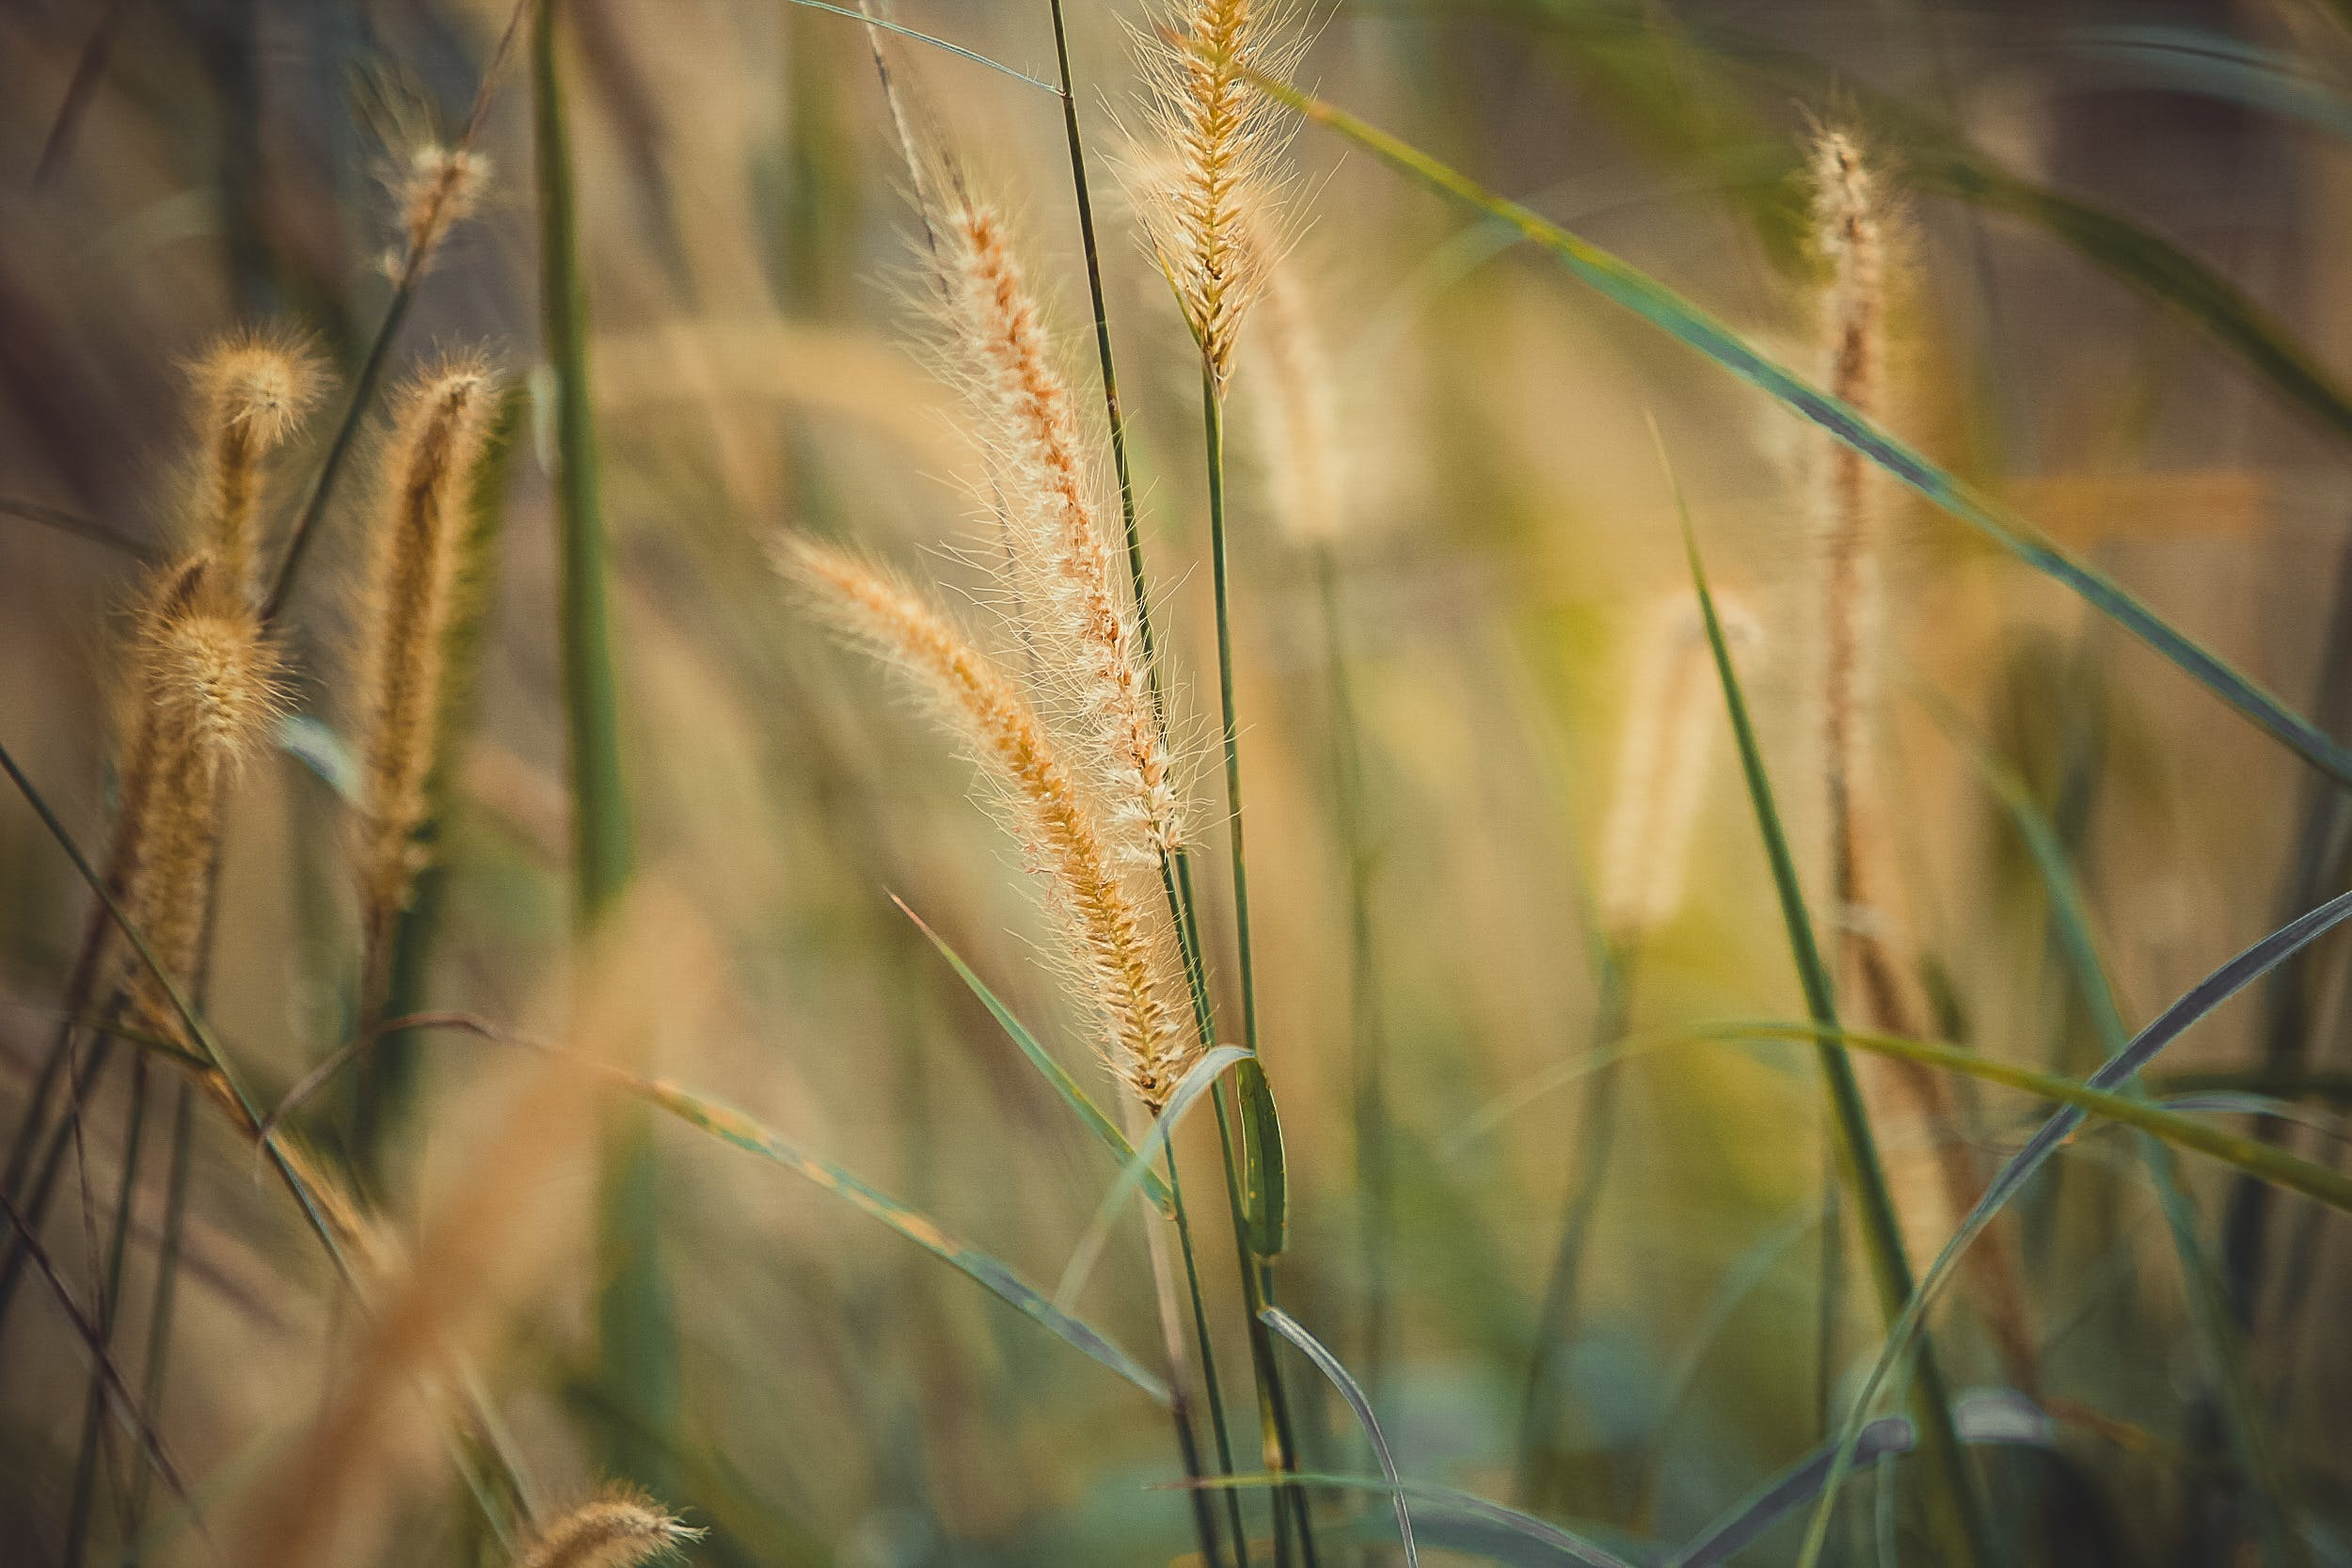 Close Up Photo of Wheat